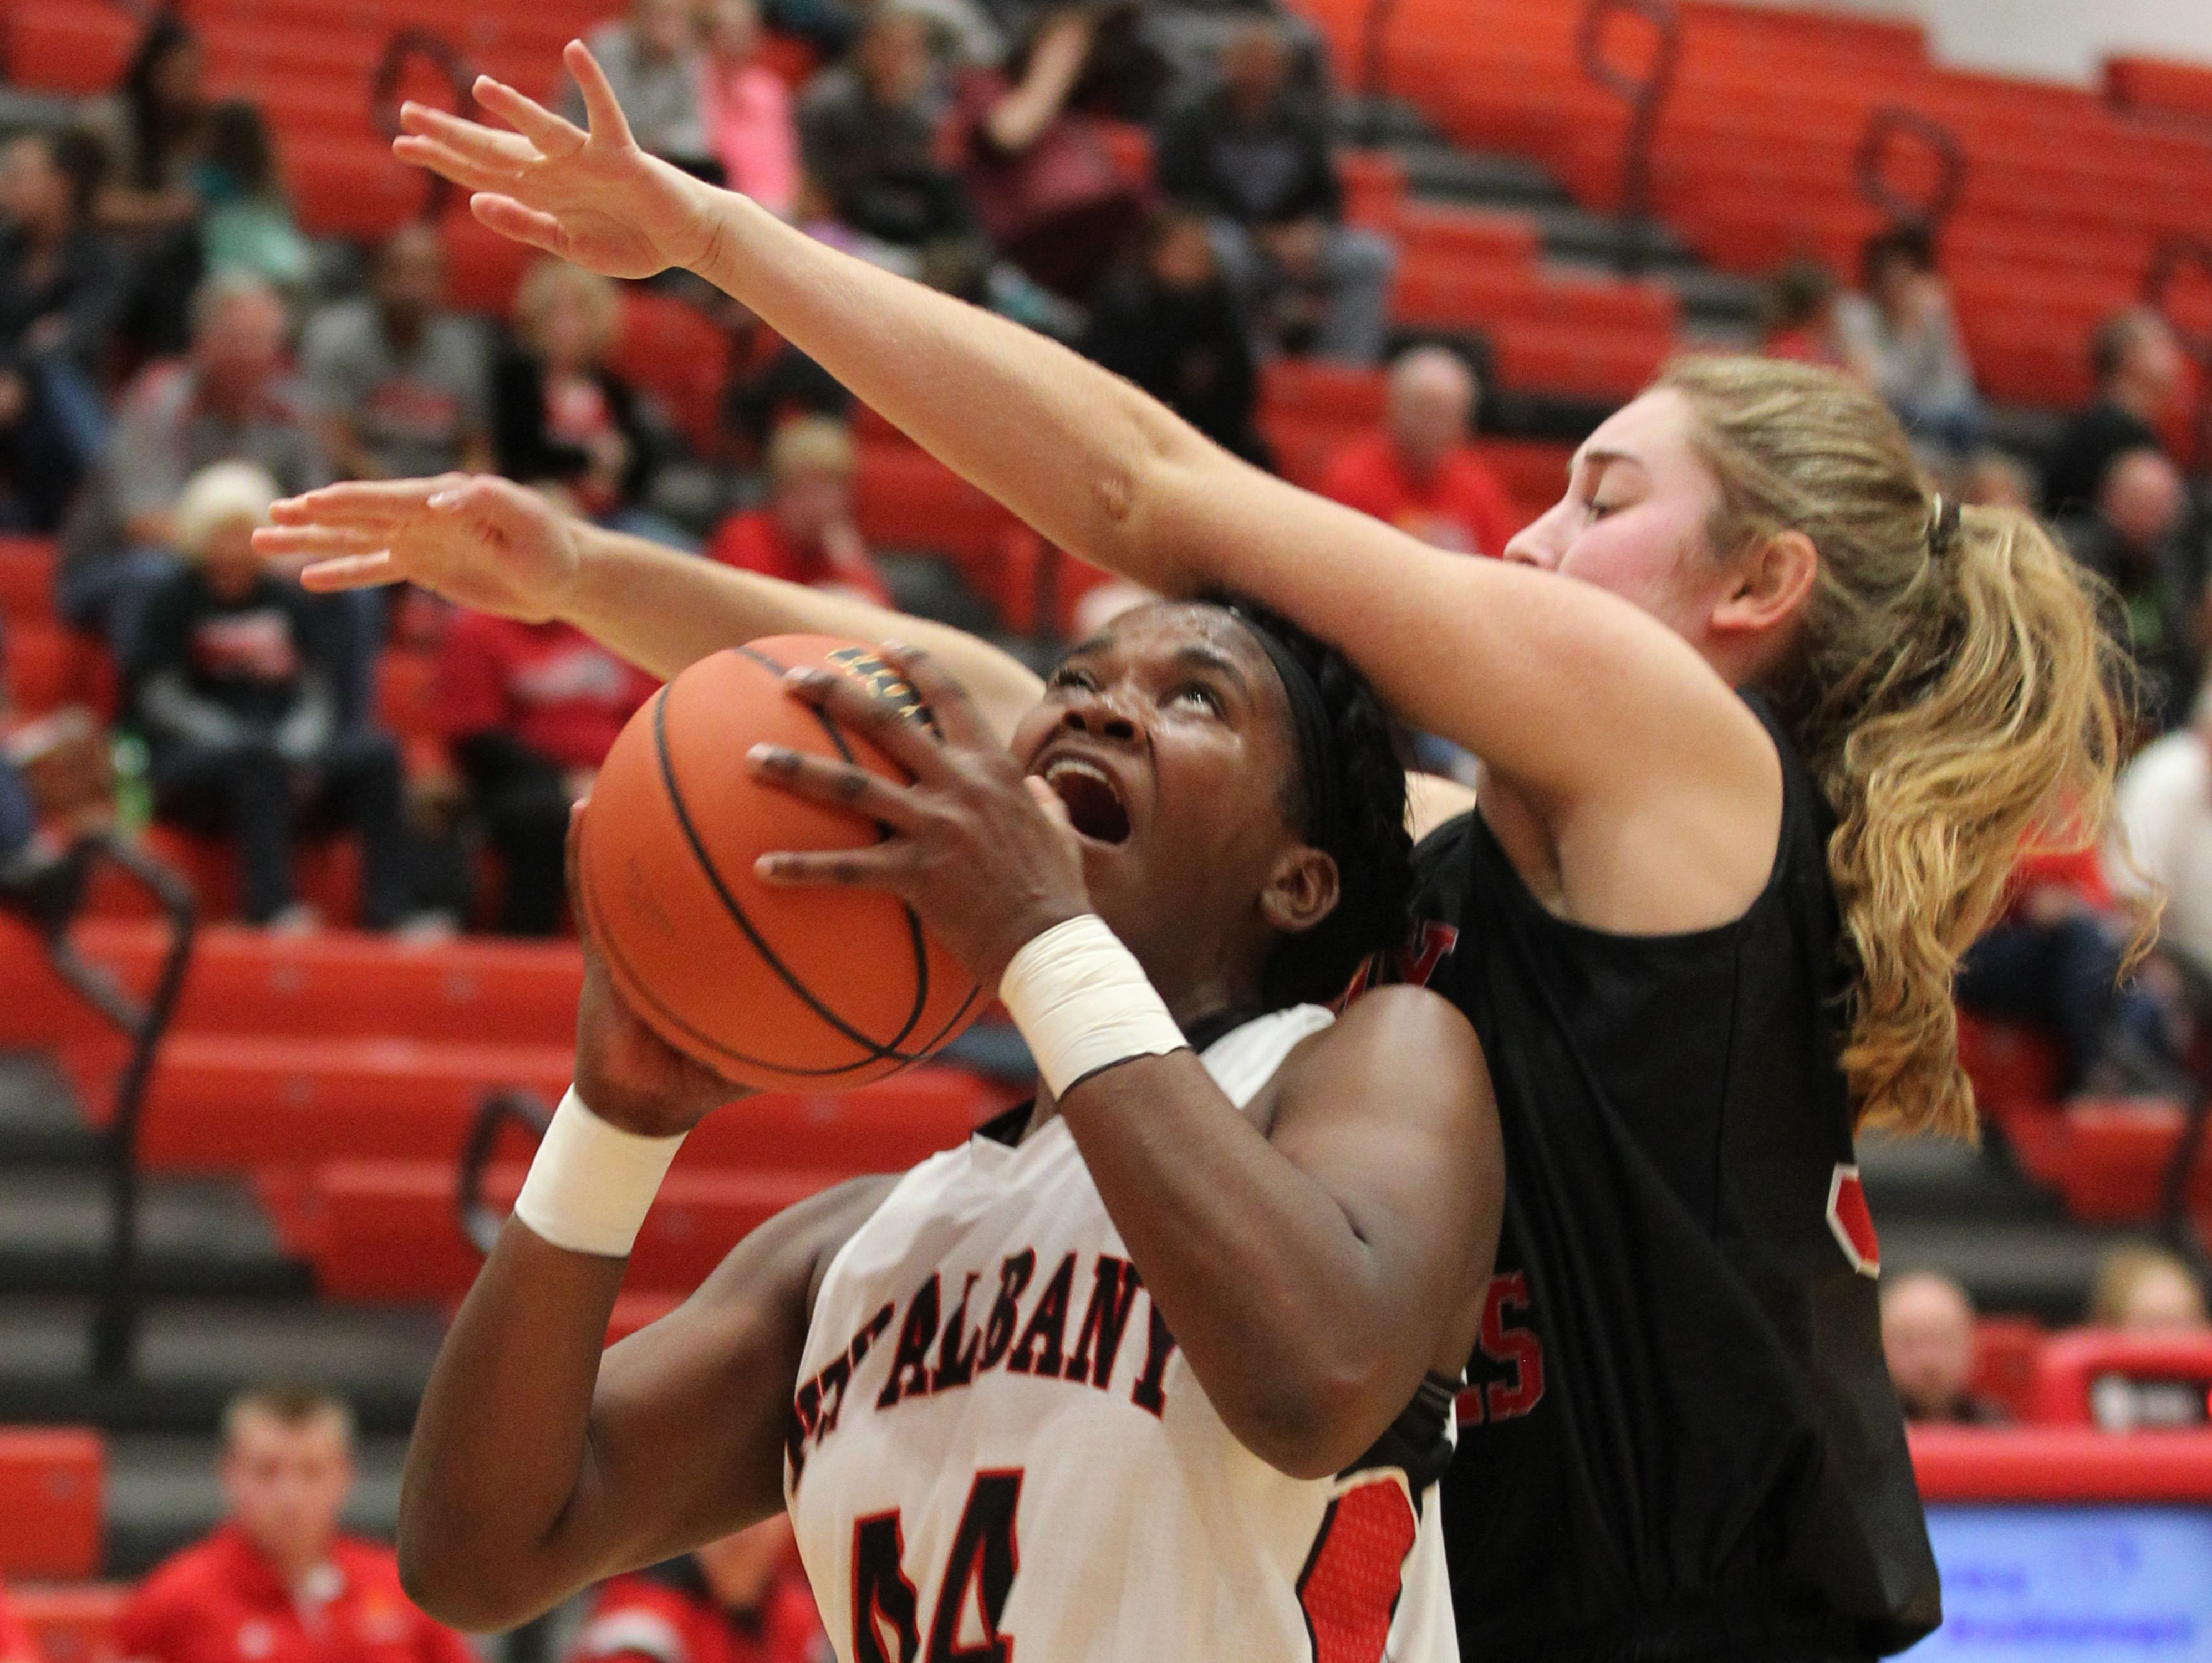 New Albany's Kelsy Taylor (44) fights to get her shot off under pressure from Brownstown Central High School's Ashley Schroer (30) during their game at New Albany High School in New Albany, Indiana. November 10, 2016